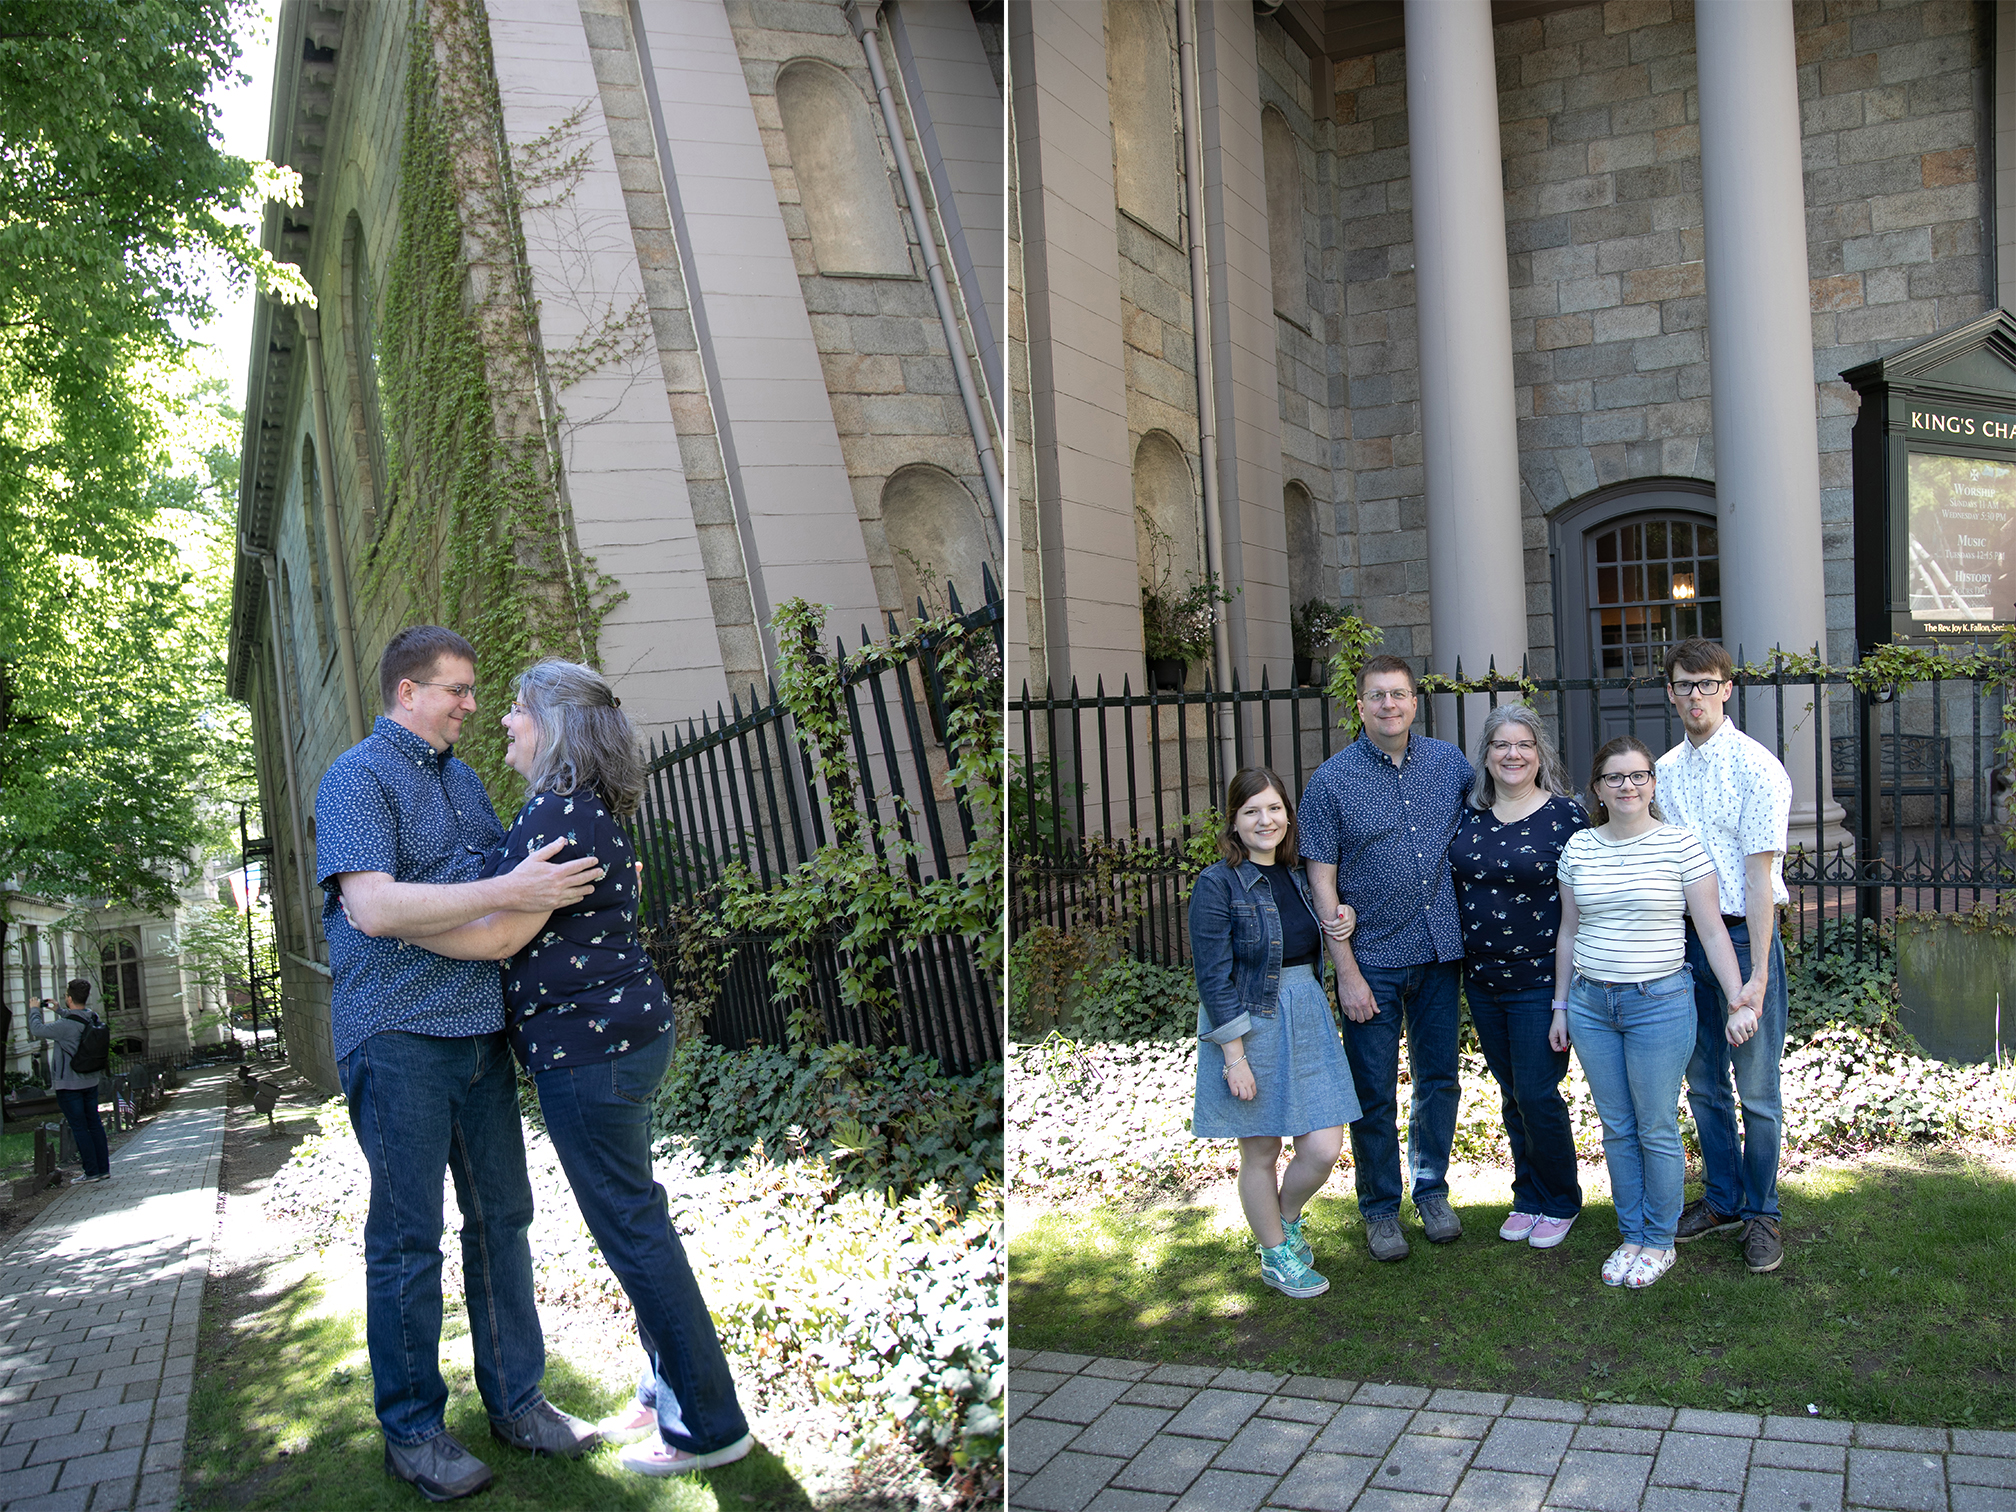 Family Photos at King's chapel in Boston MA